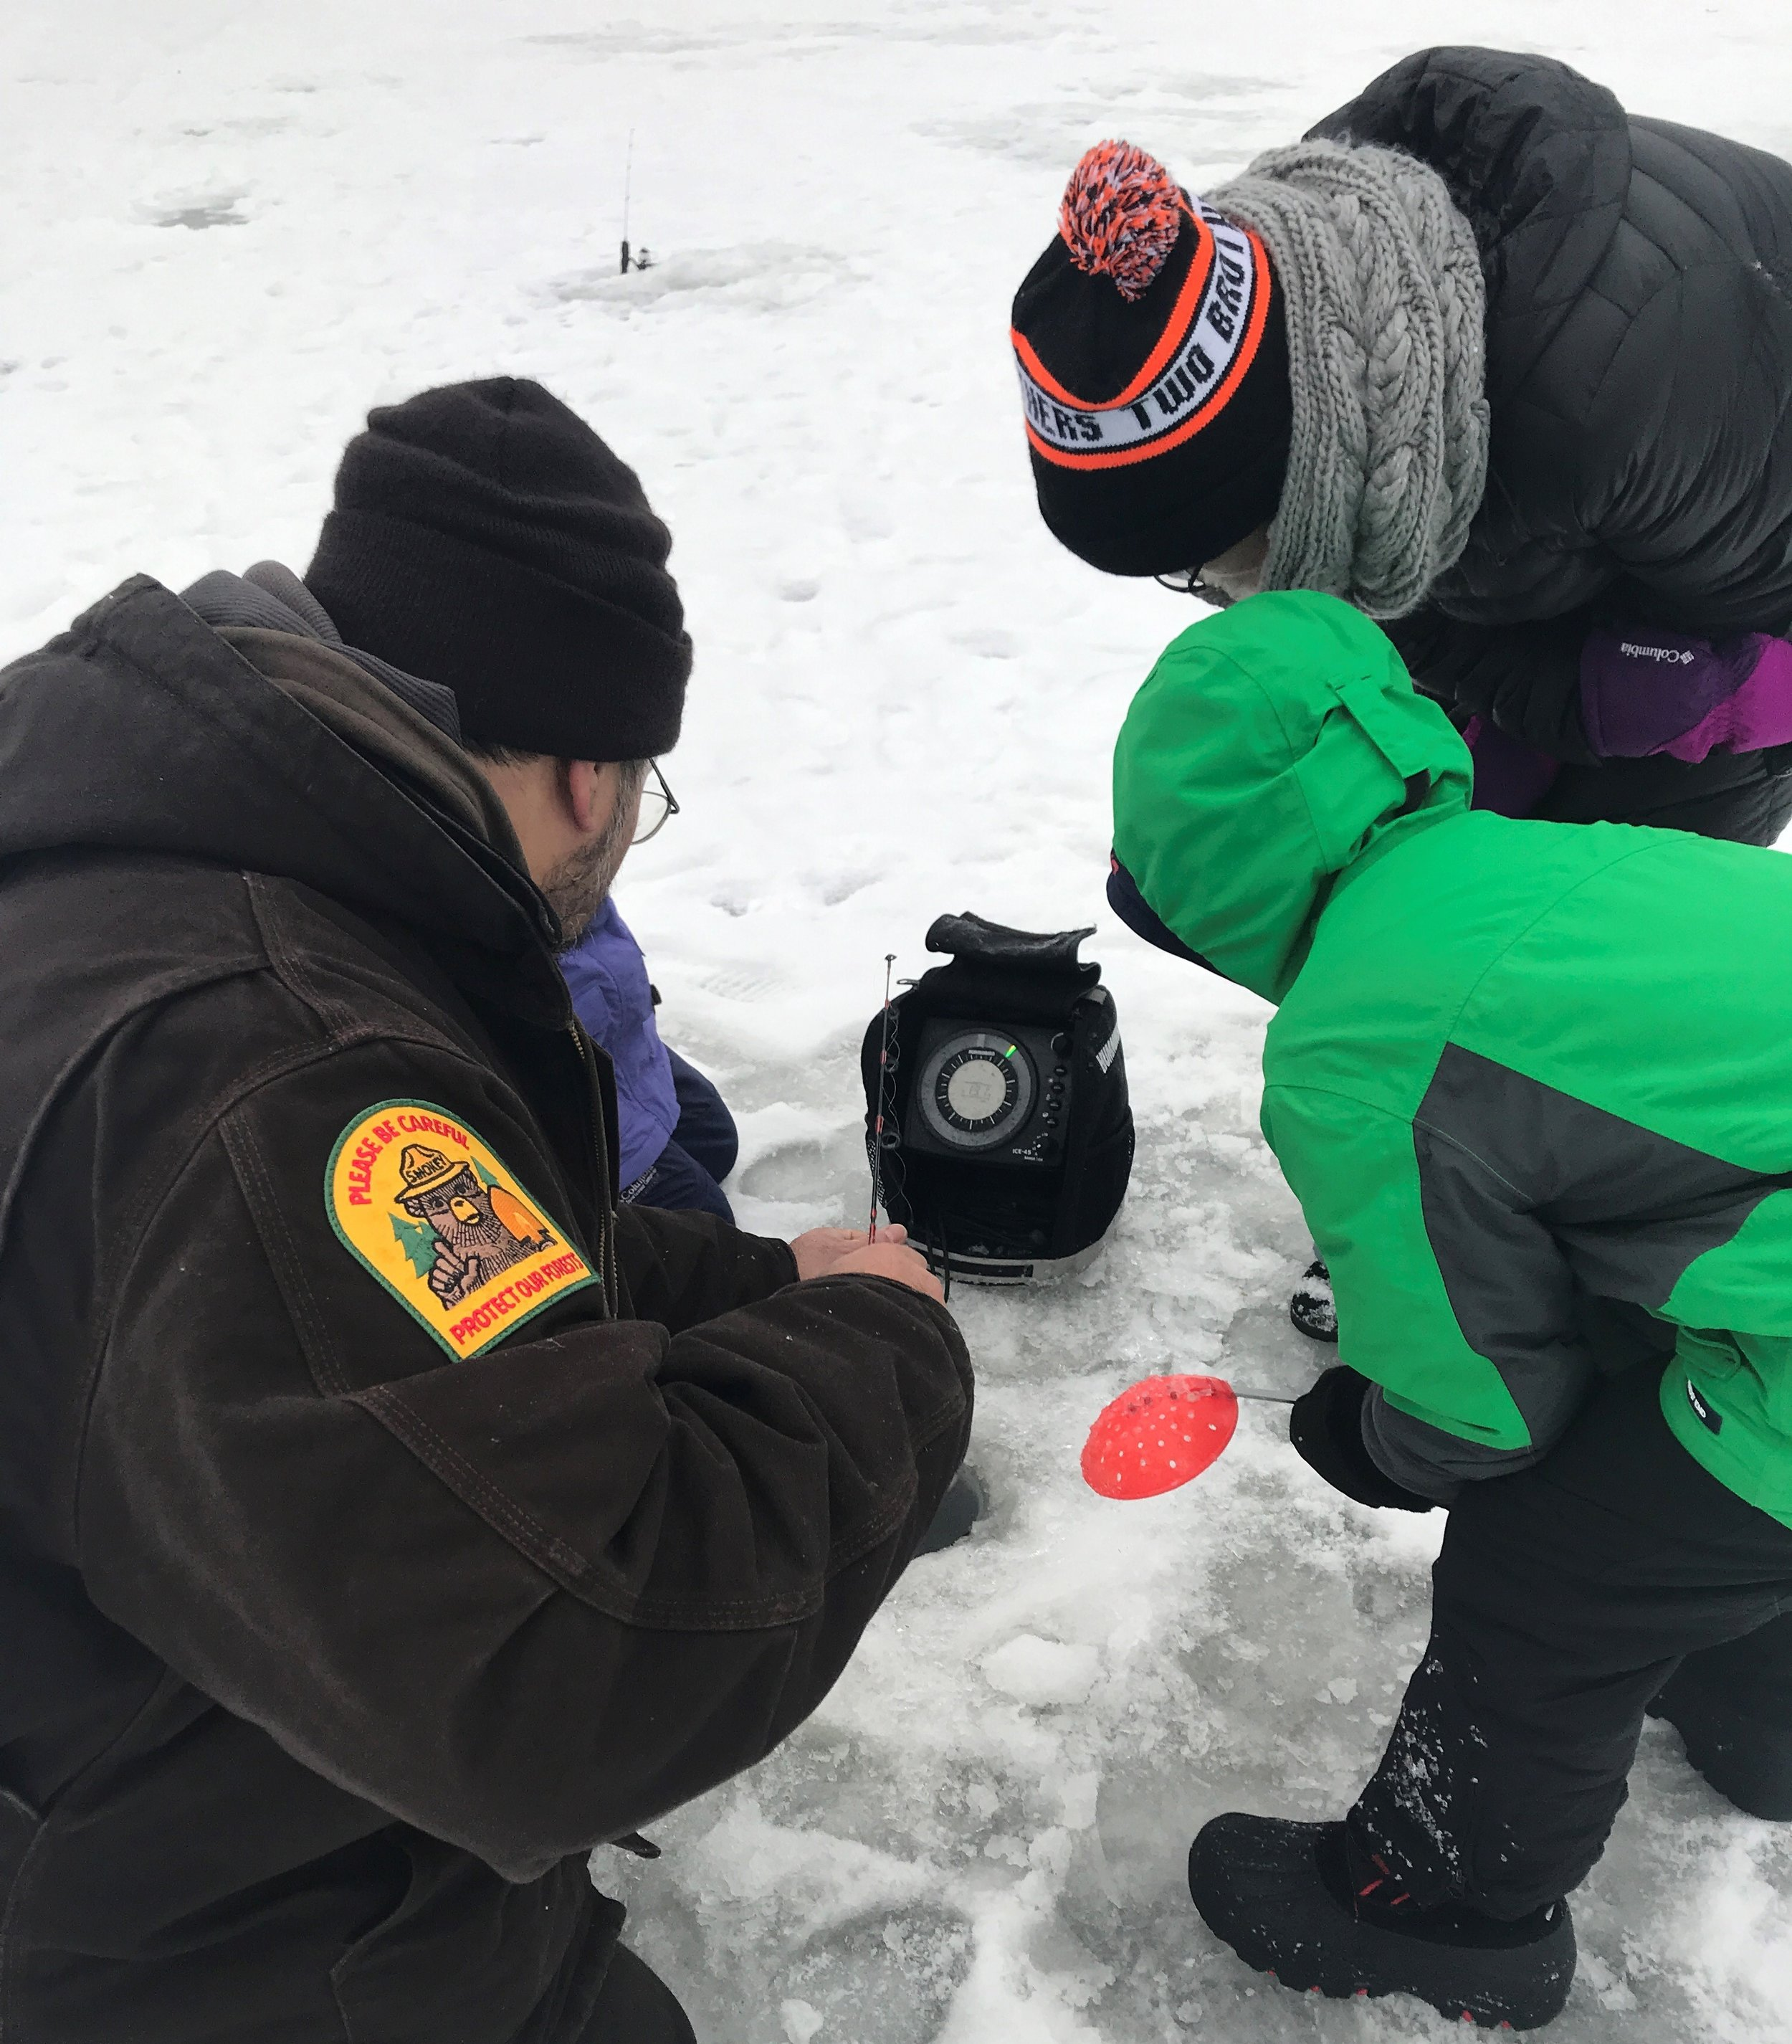 DuPage Forest Preserve Ranger Hahnz Teope used sonar to find fish under the ice